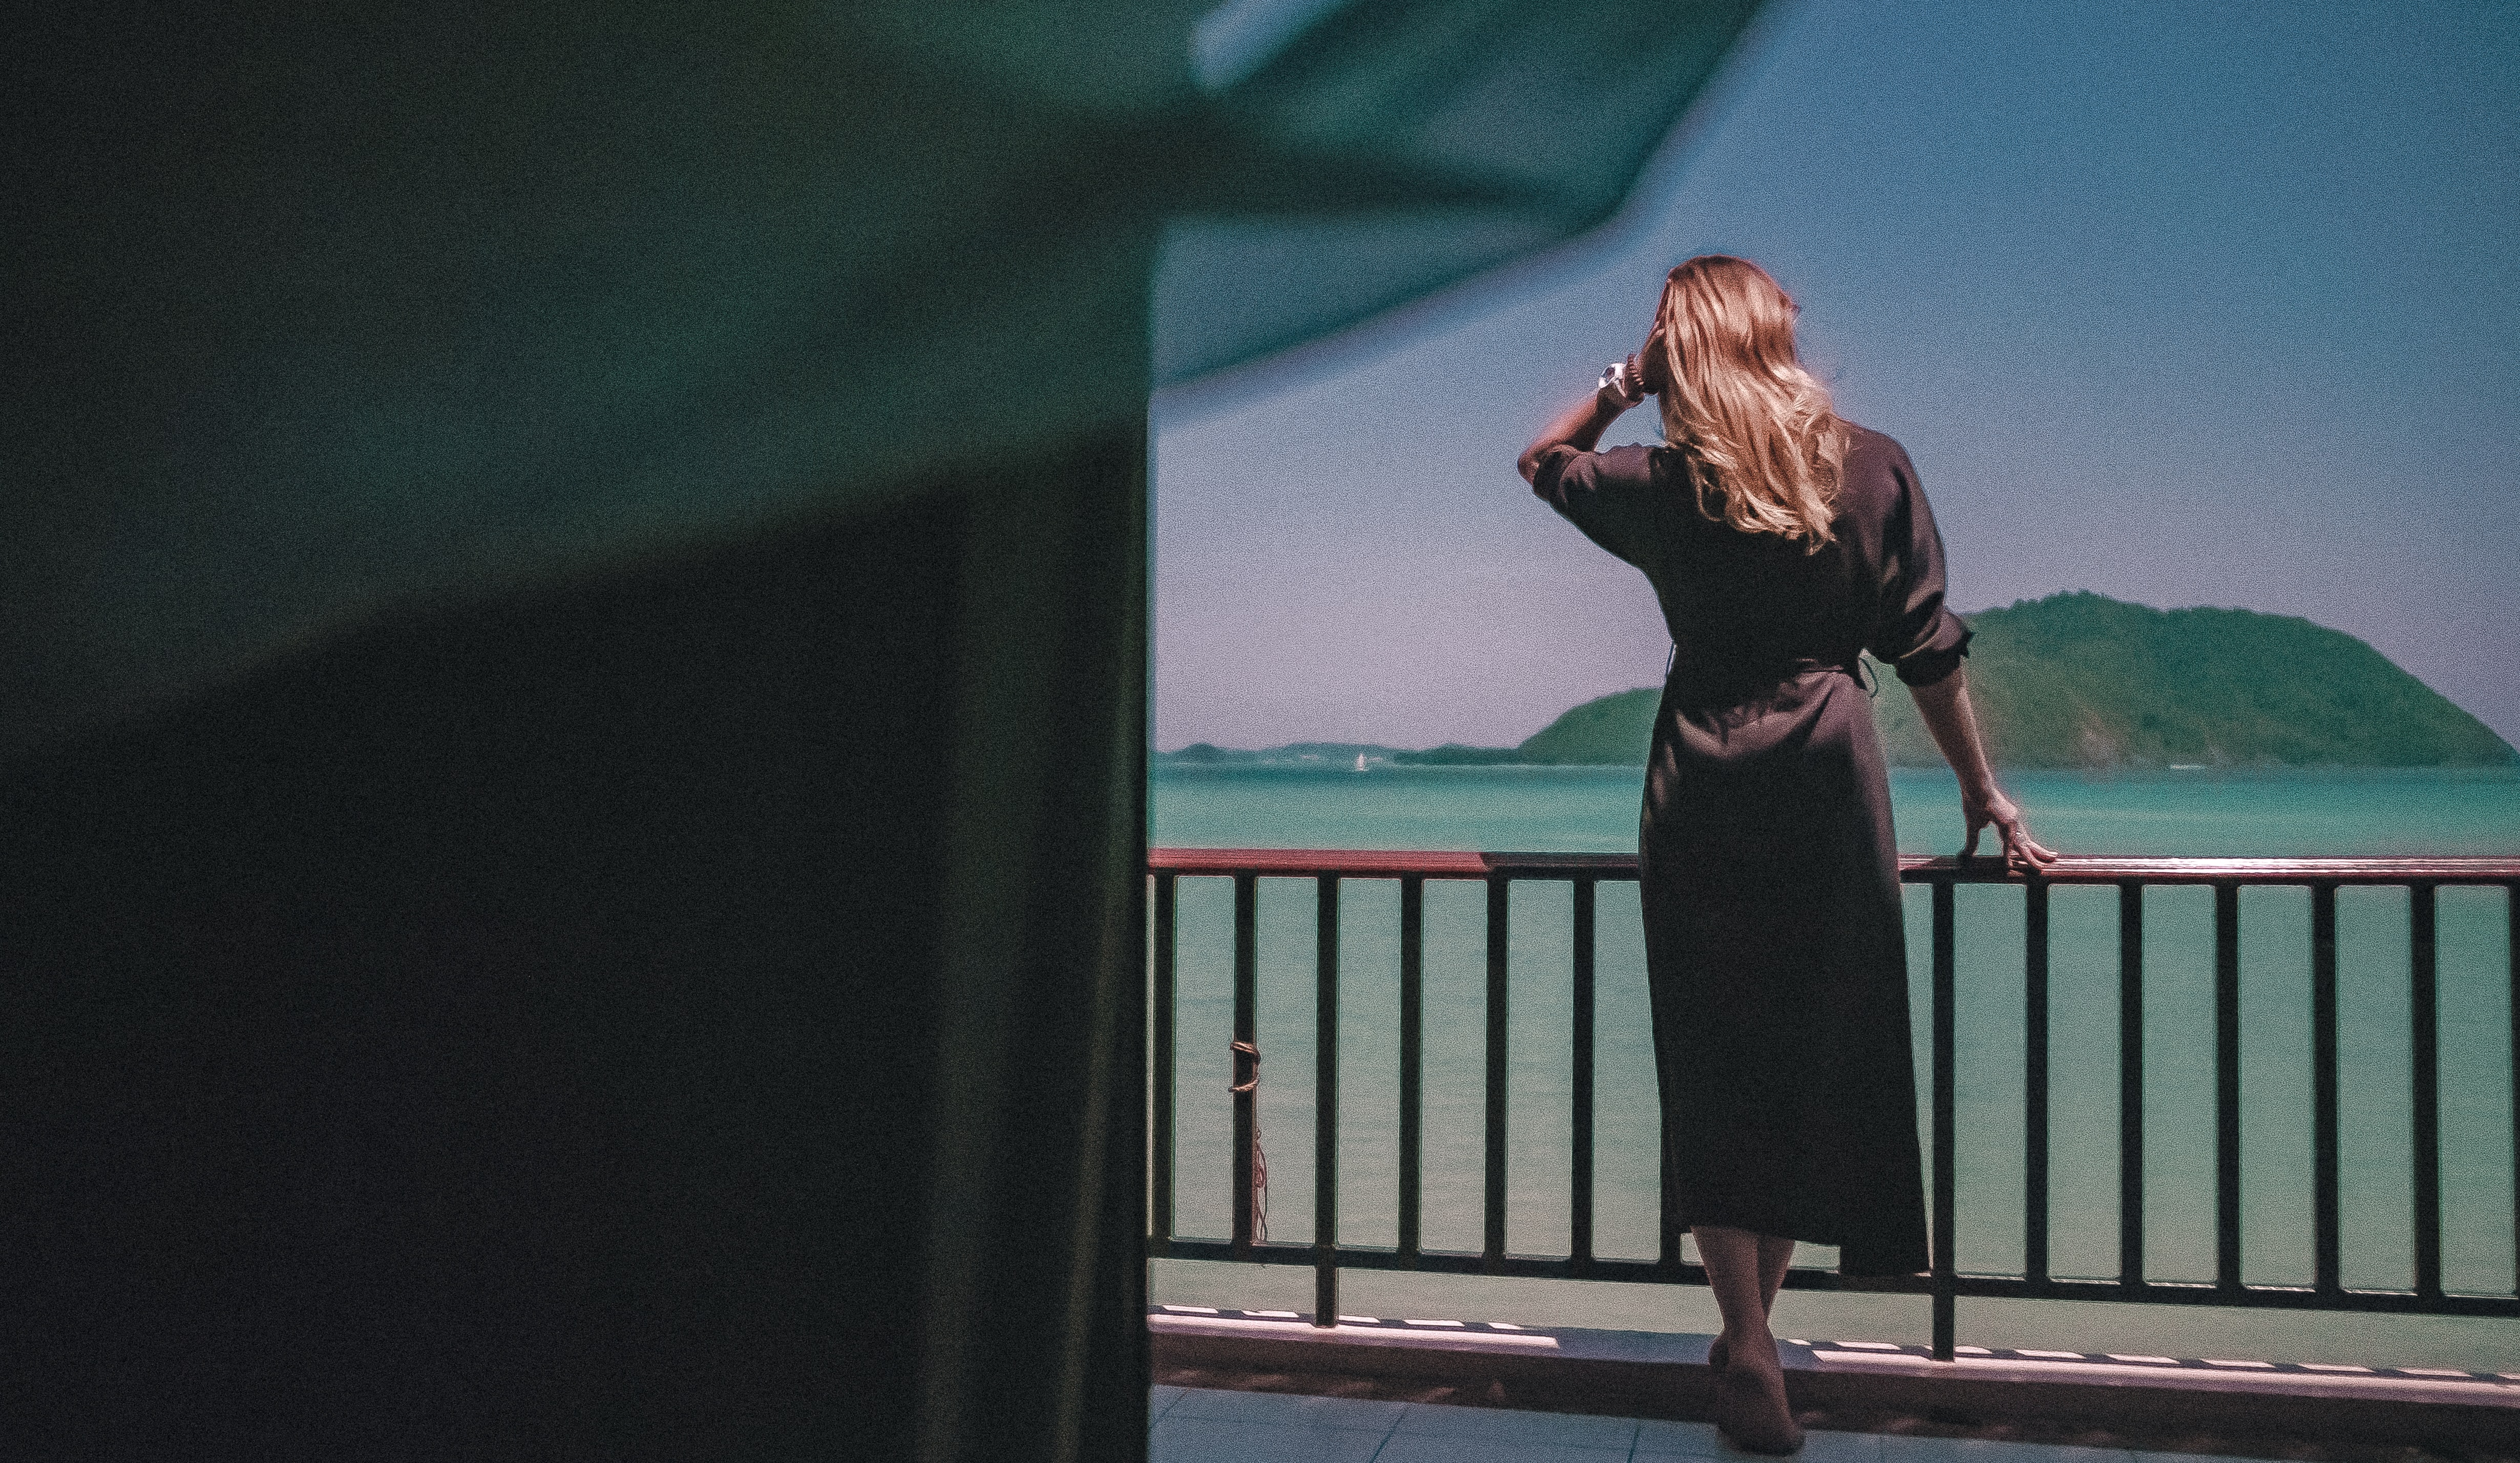 woman in brown robe stands in porch overlooking sea